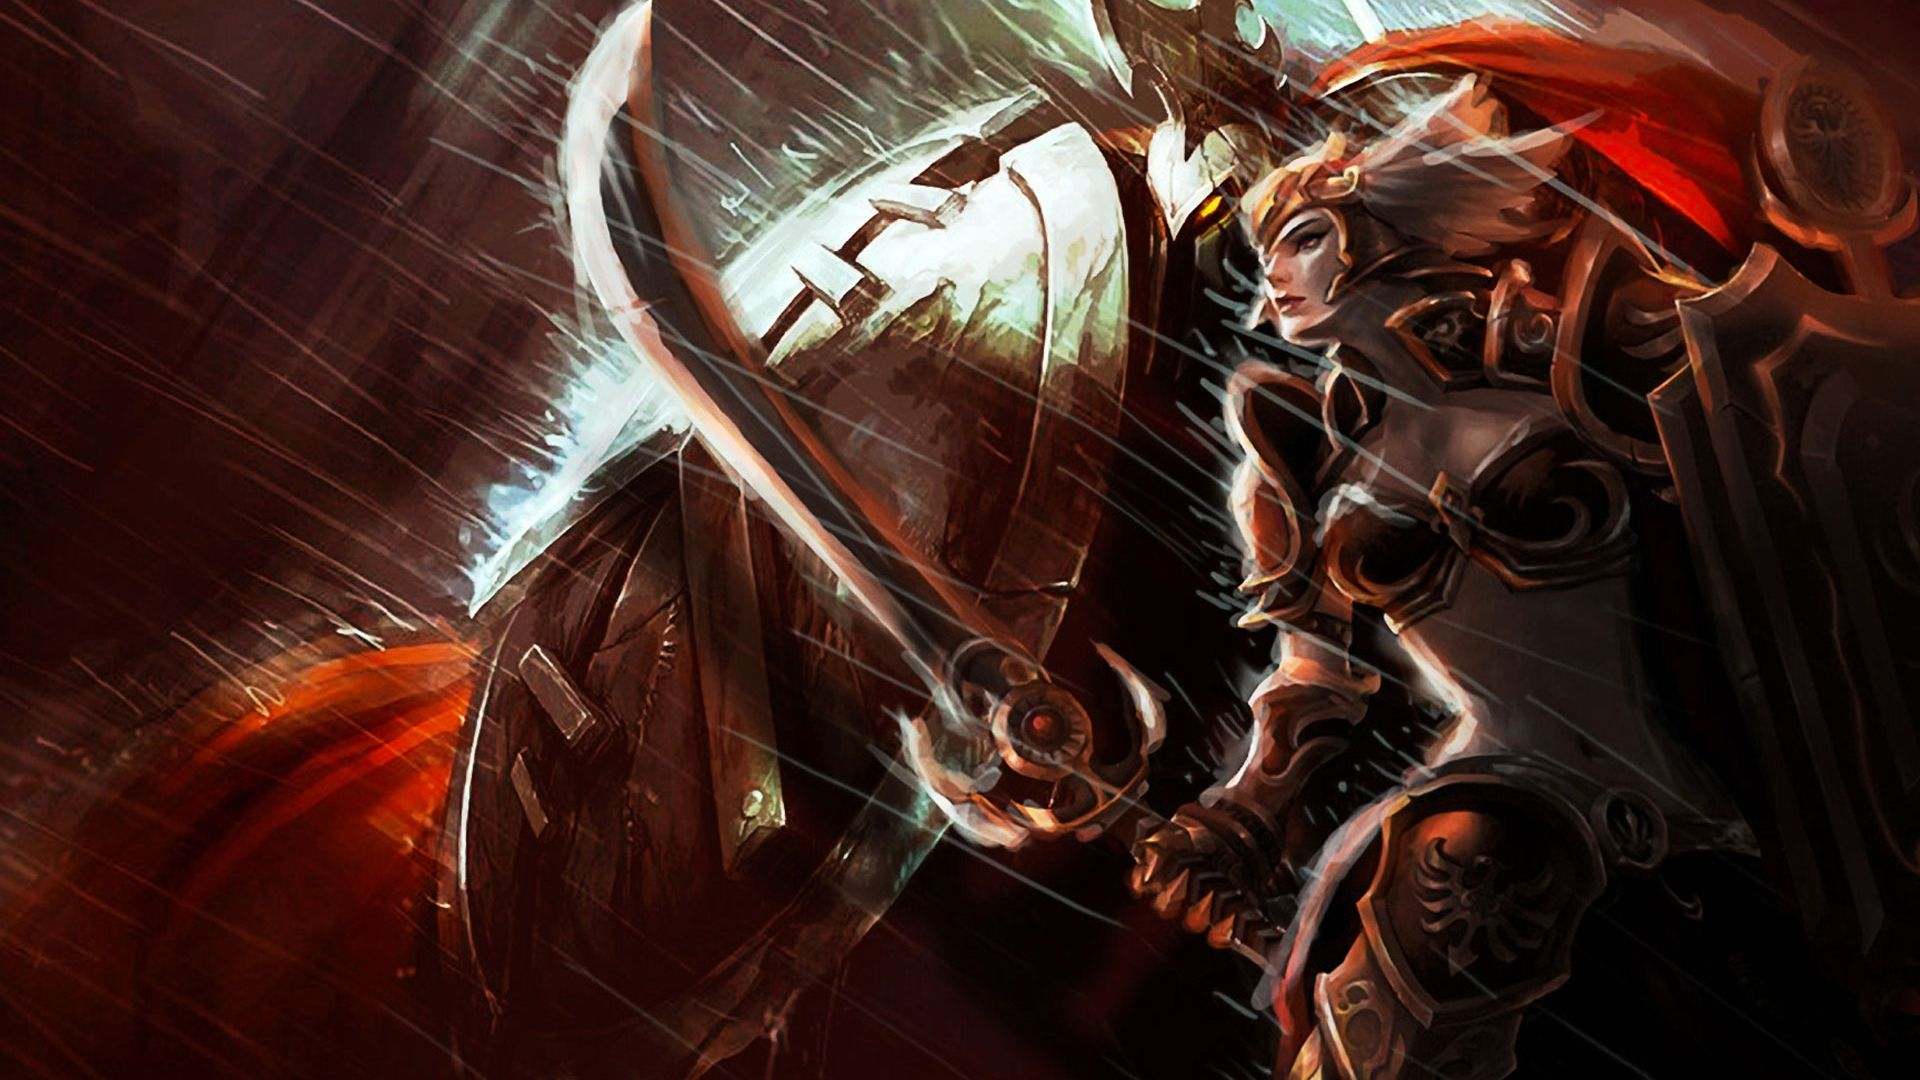 Pantheon & Leona wallpaper | LoL | Pinterest | Wallpaper